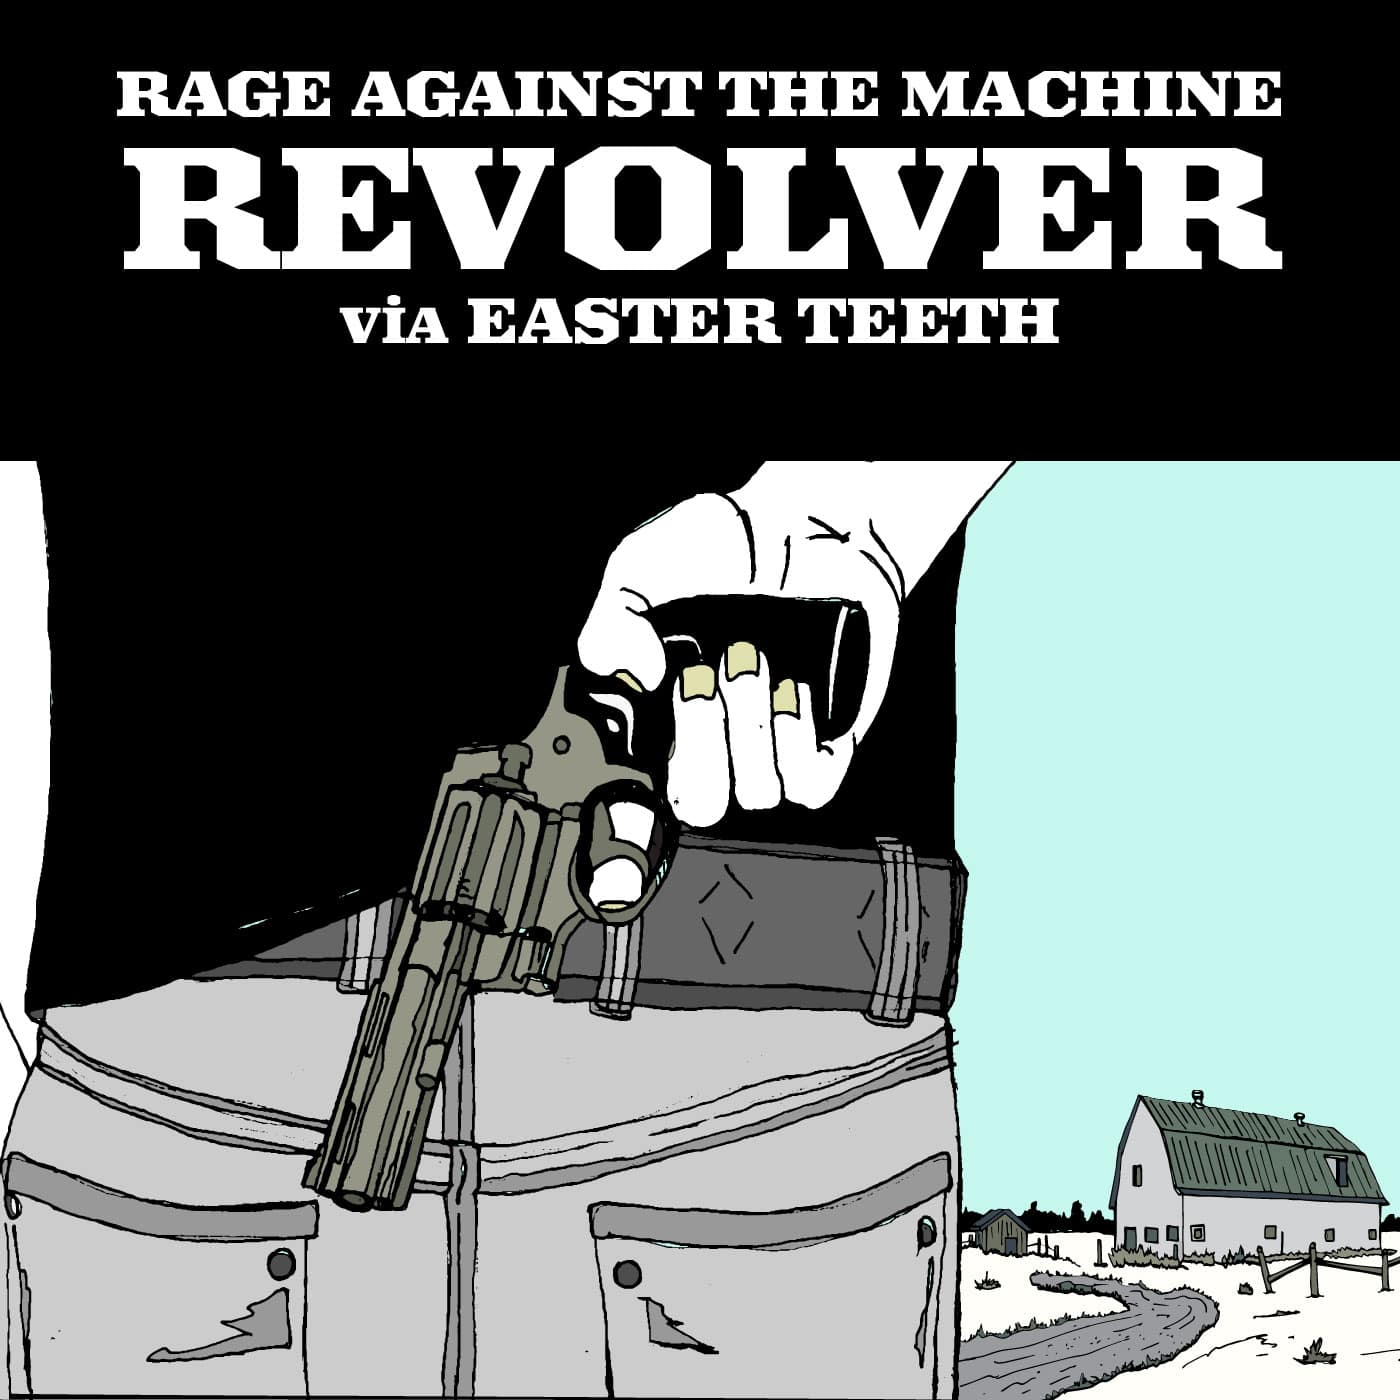 Revolver cover - RATM by EASTER TEETH